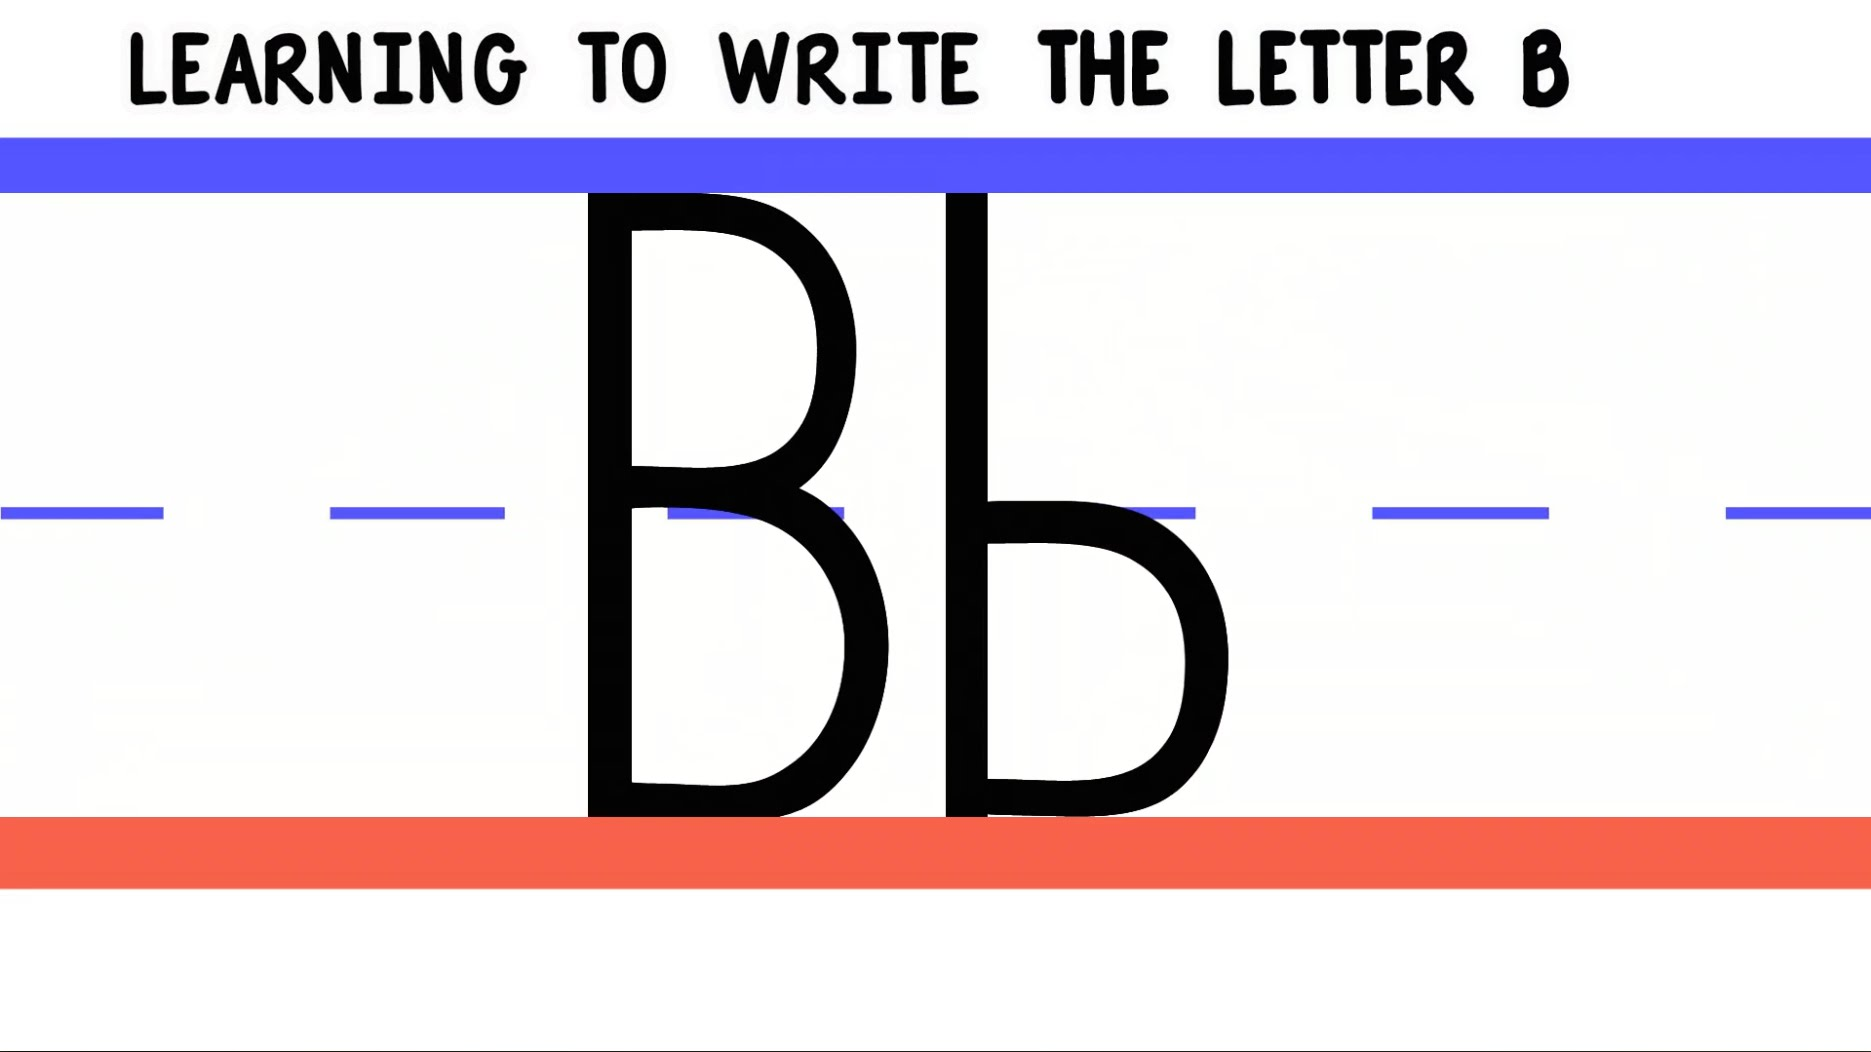 how to write a letter to the editor letter b practice handwriting downloads 123abc tv 22436 | 1138